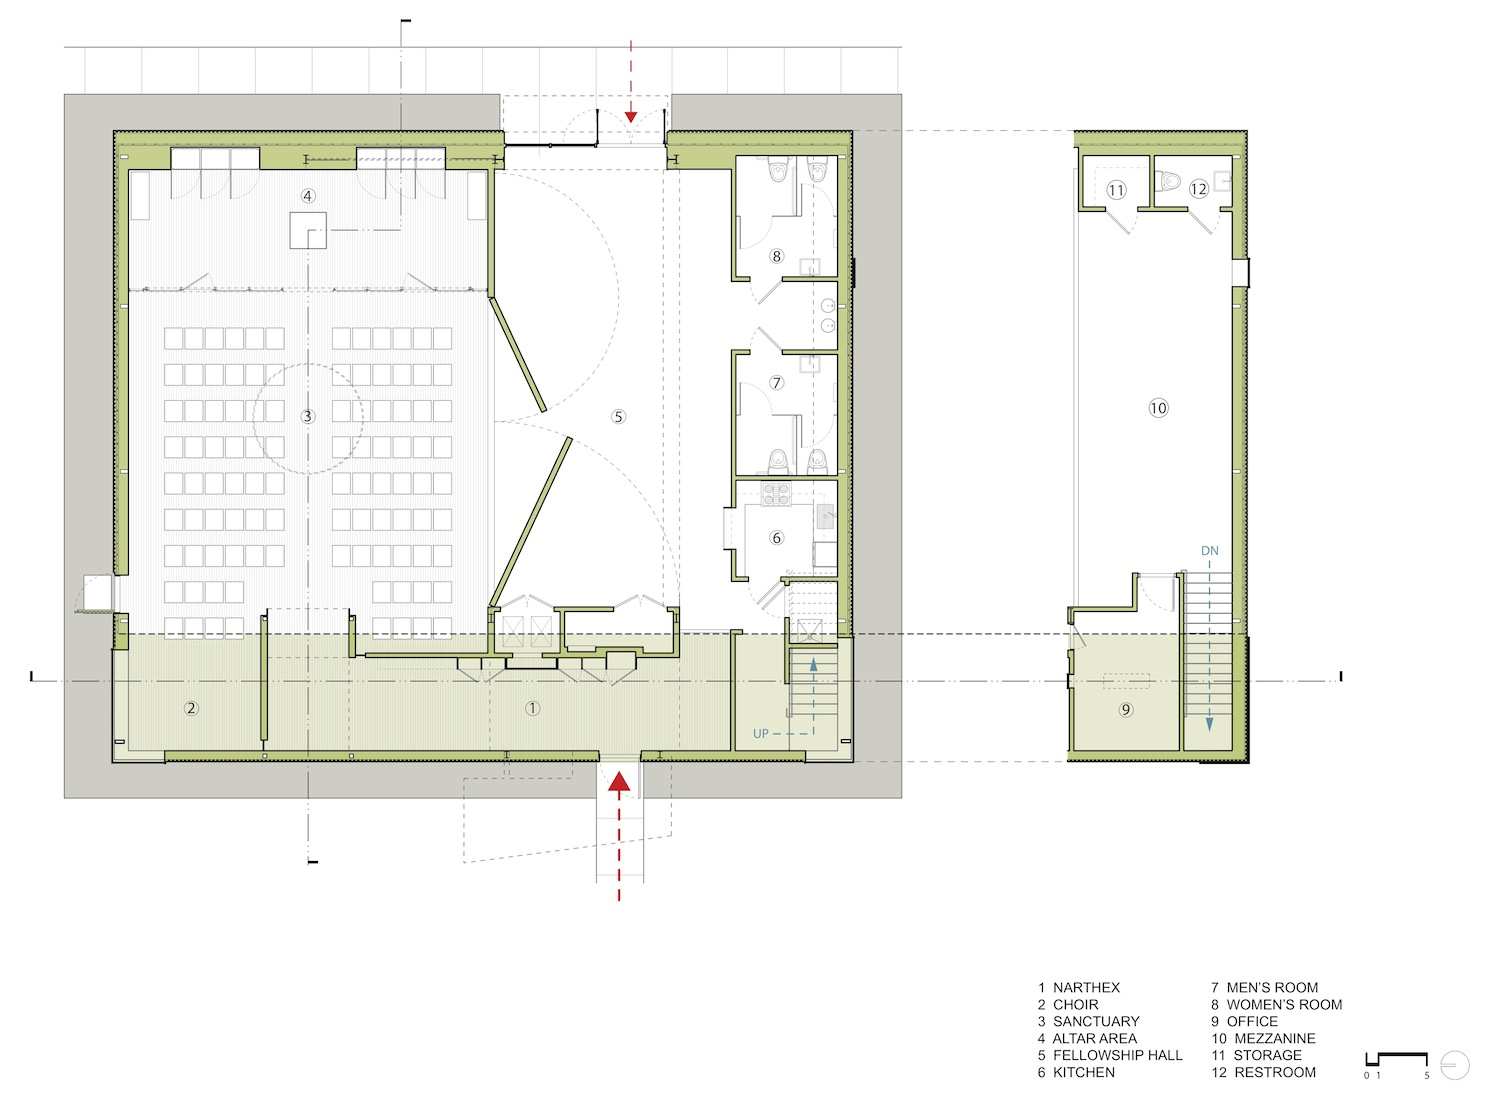 Yale University Dorm Floor Plans Floor plan drawings Yale University Dorm Floor Plans